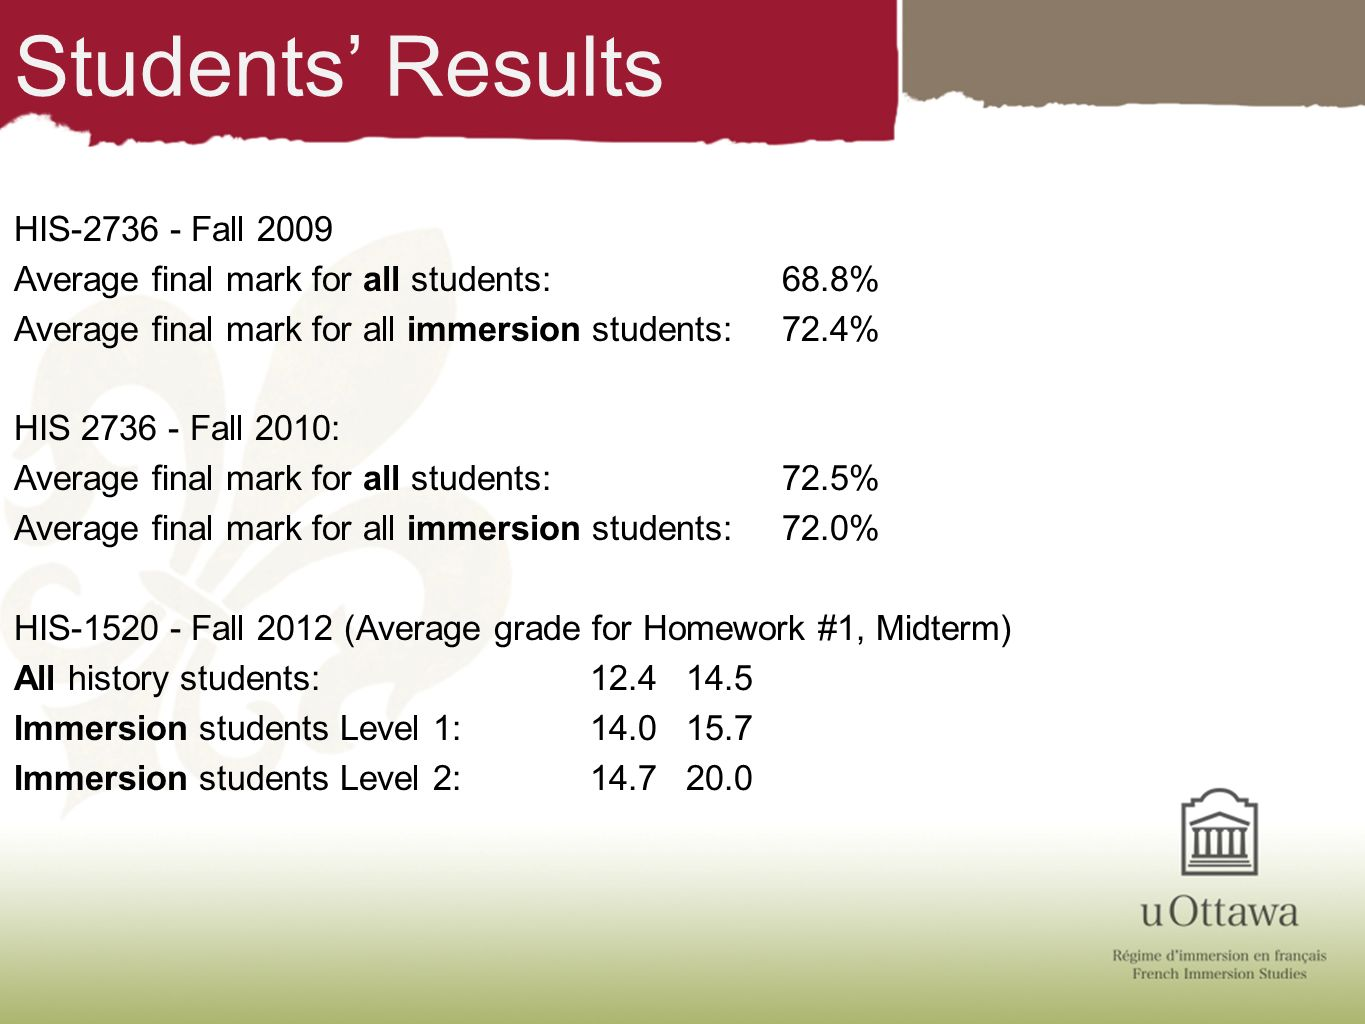 Students' Results